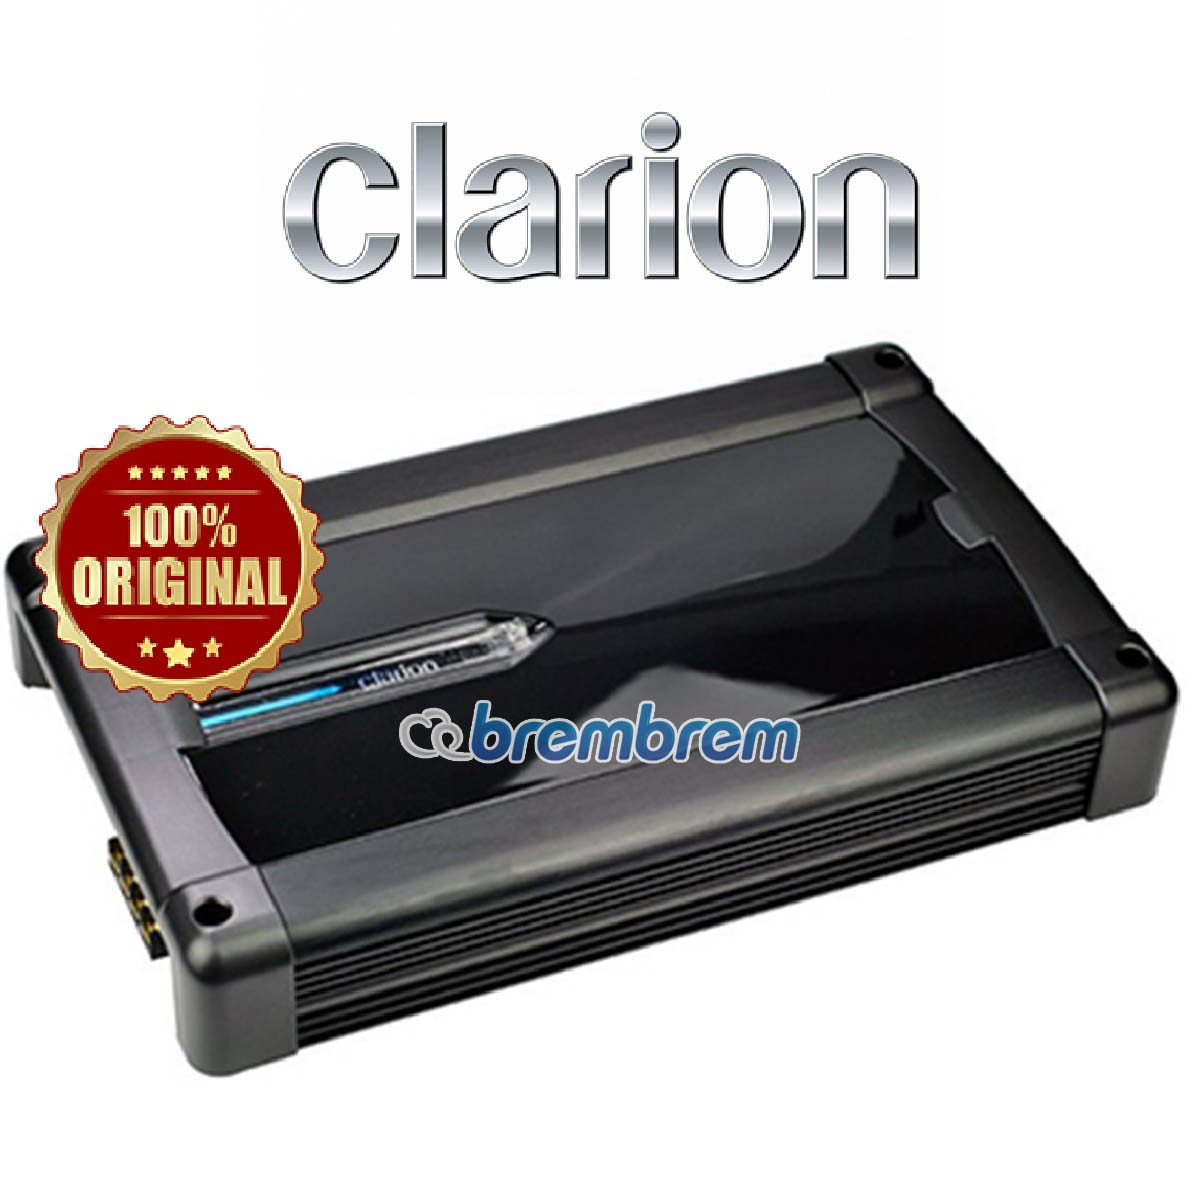 CLARION POWER XR-2420 - POWER 4 CHANNEL